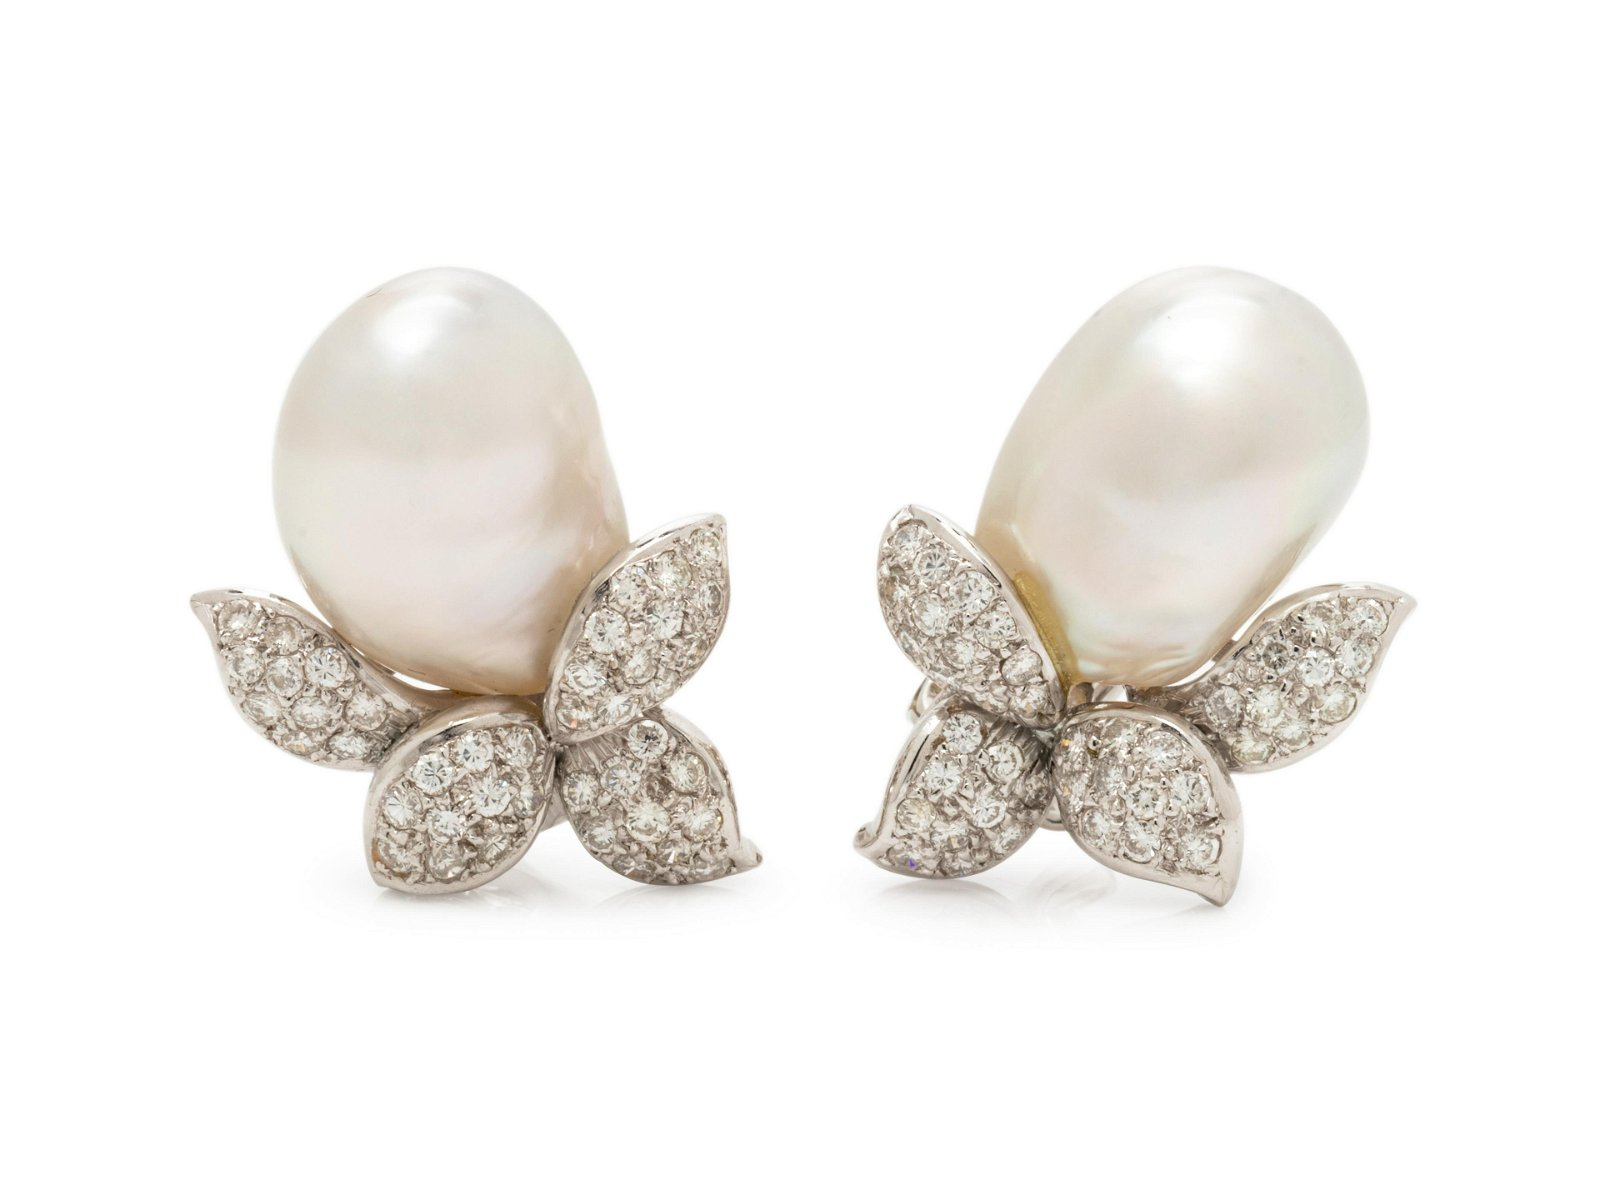 ADLER, CULTURED BAROQUE PEARL AND DIAMOND EARCLIPS